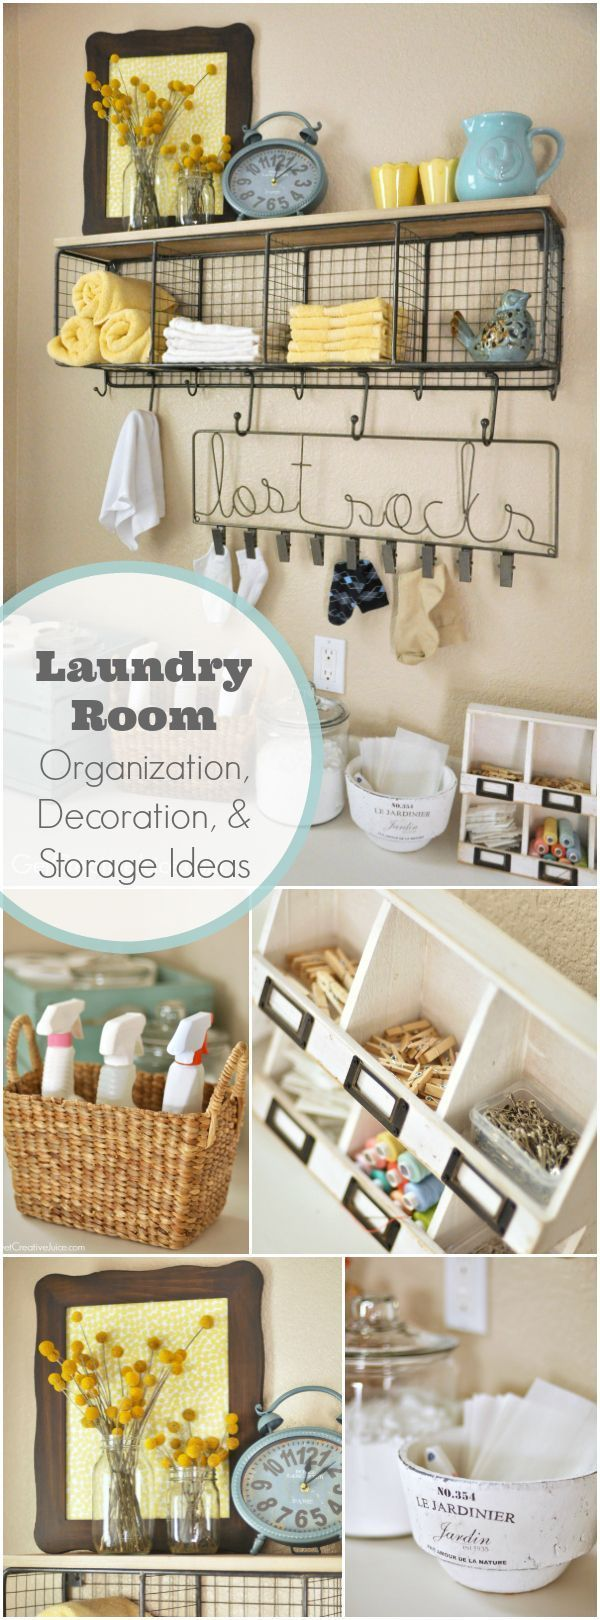 Laundry Room Organization and Storage Ideas - Pinned for ForeclosuresToGo.com the Internet Authority on Bargain Priced Homes